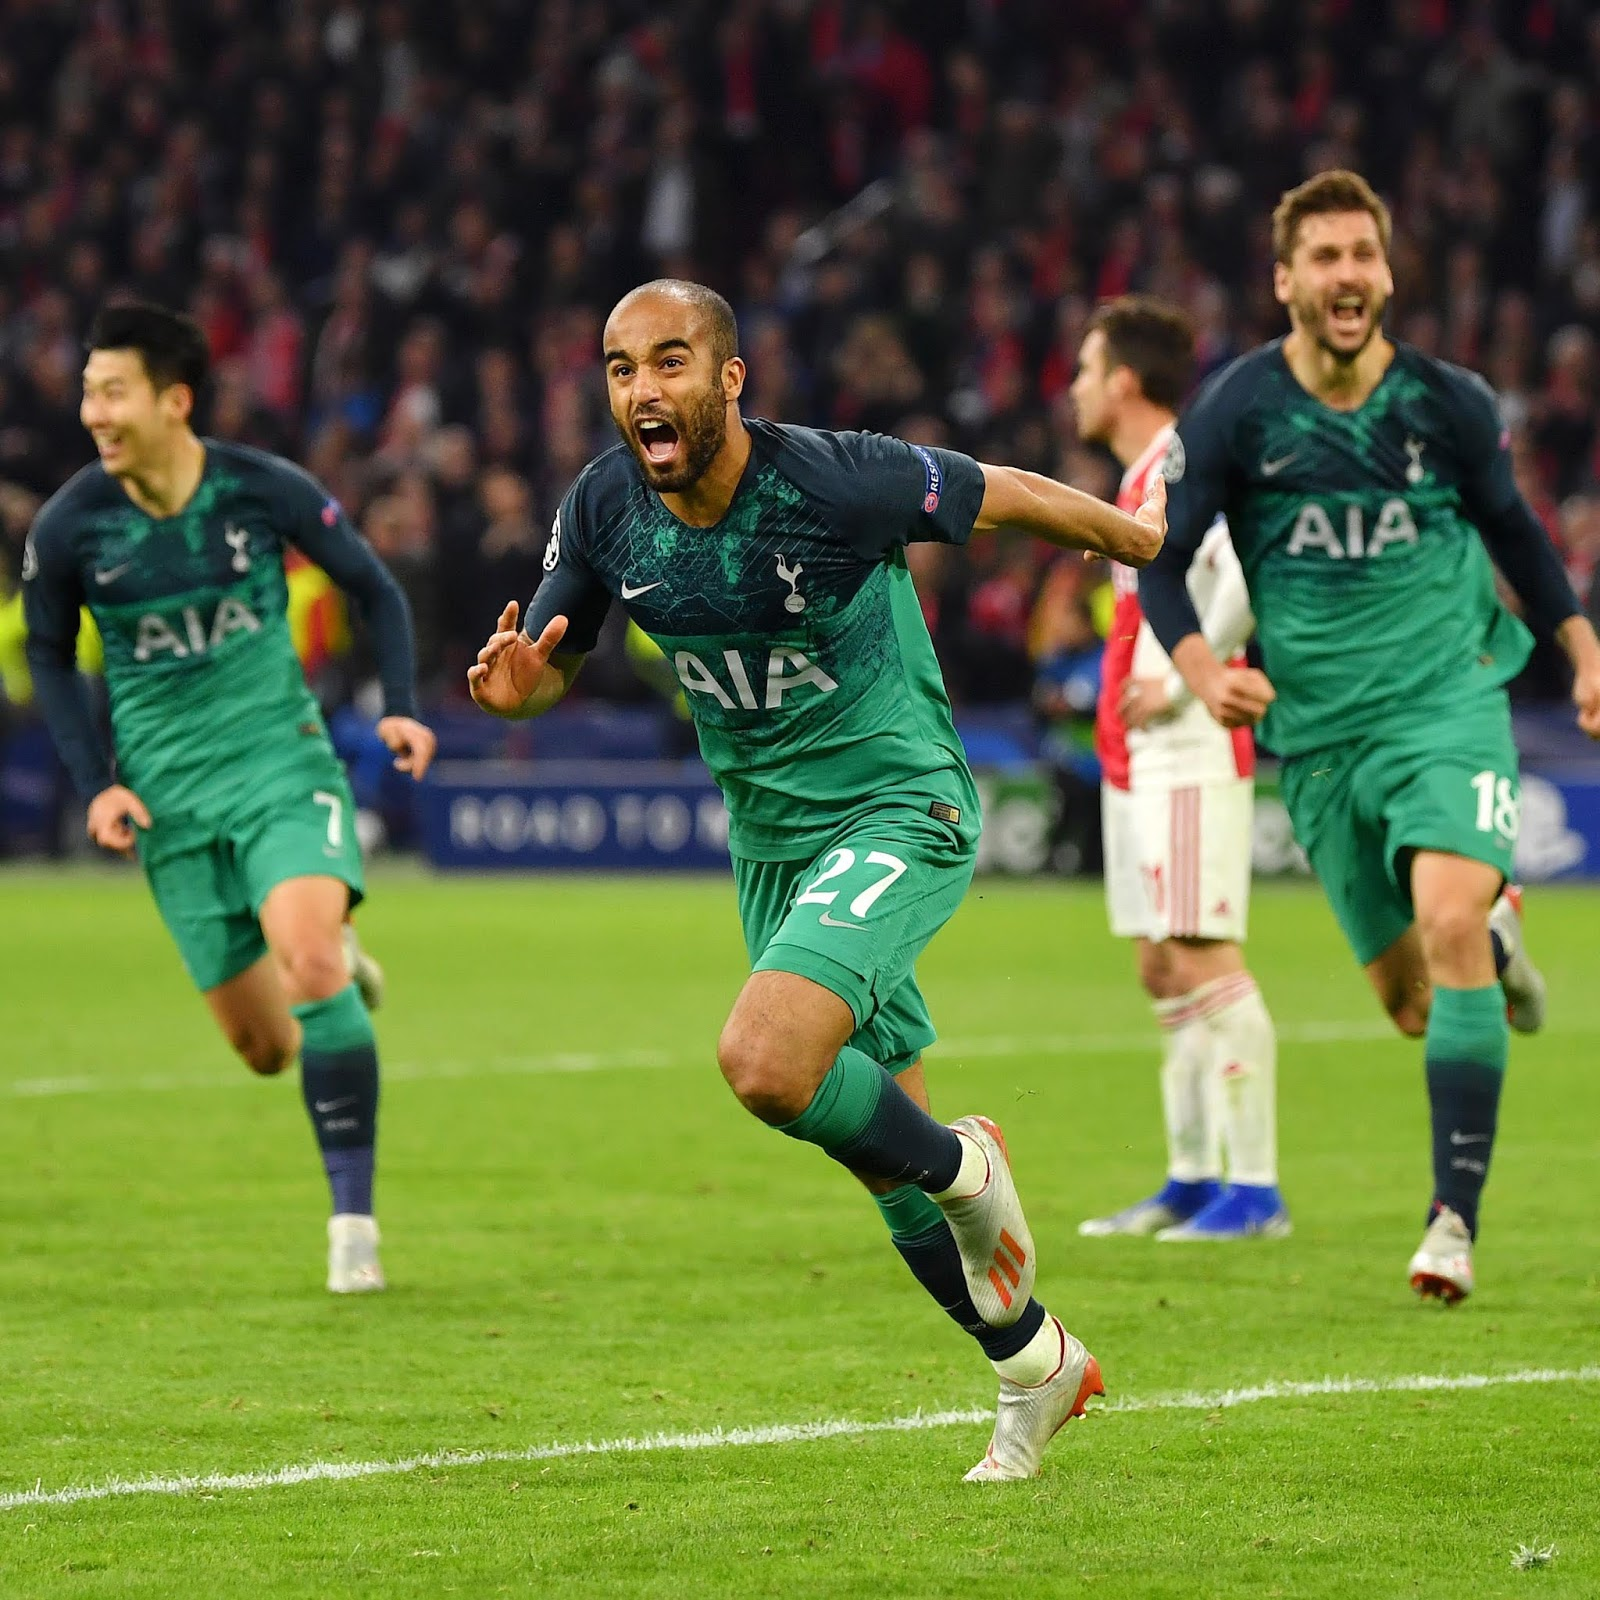 Lucas Moura Spurs Goals: Tottenham Hotspur Are Through To Their First Ever